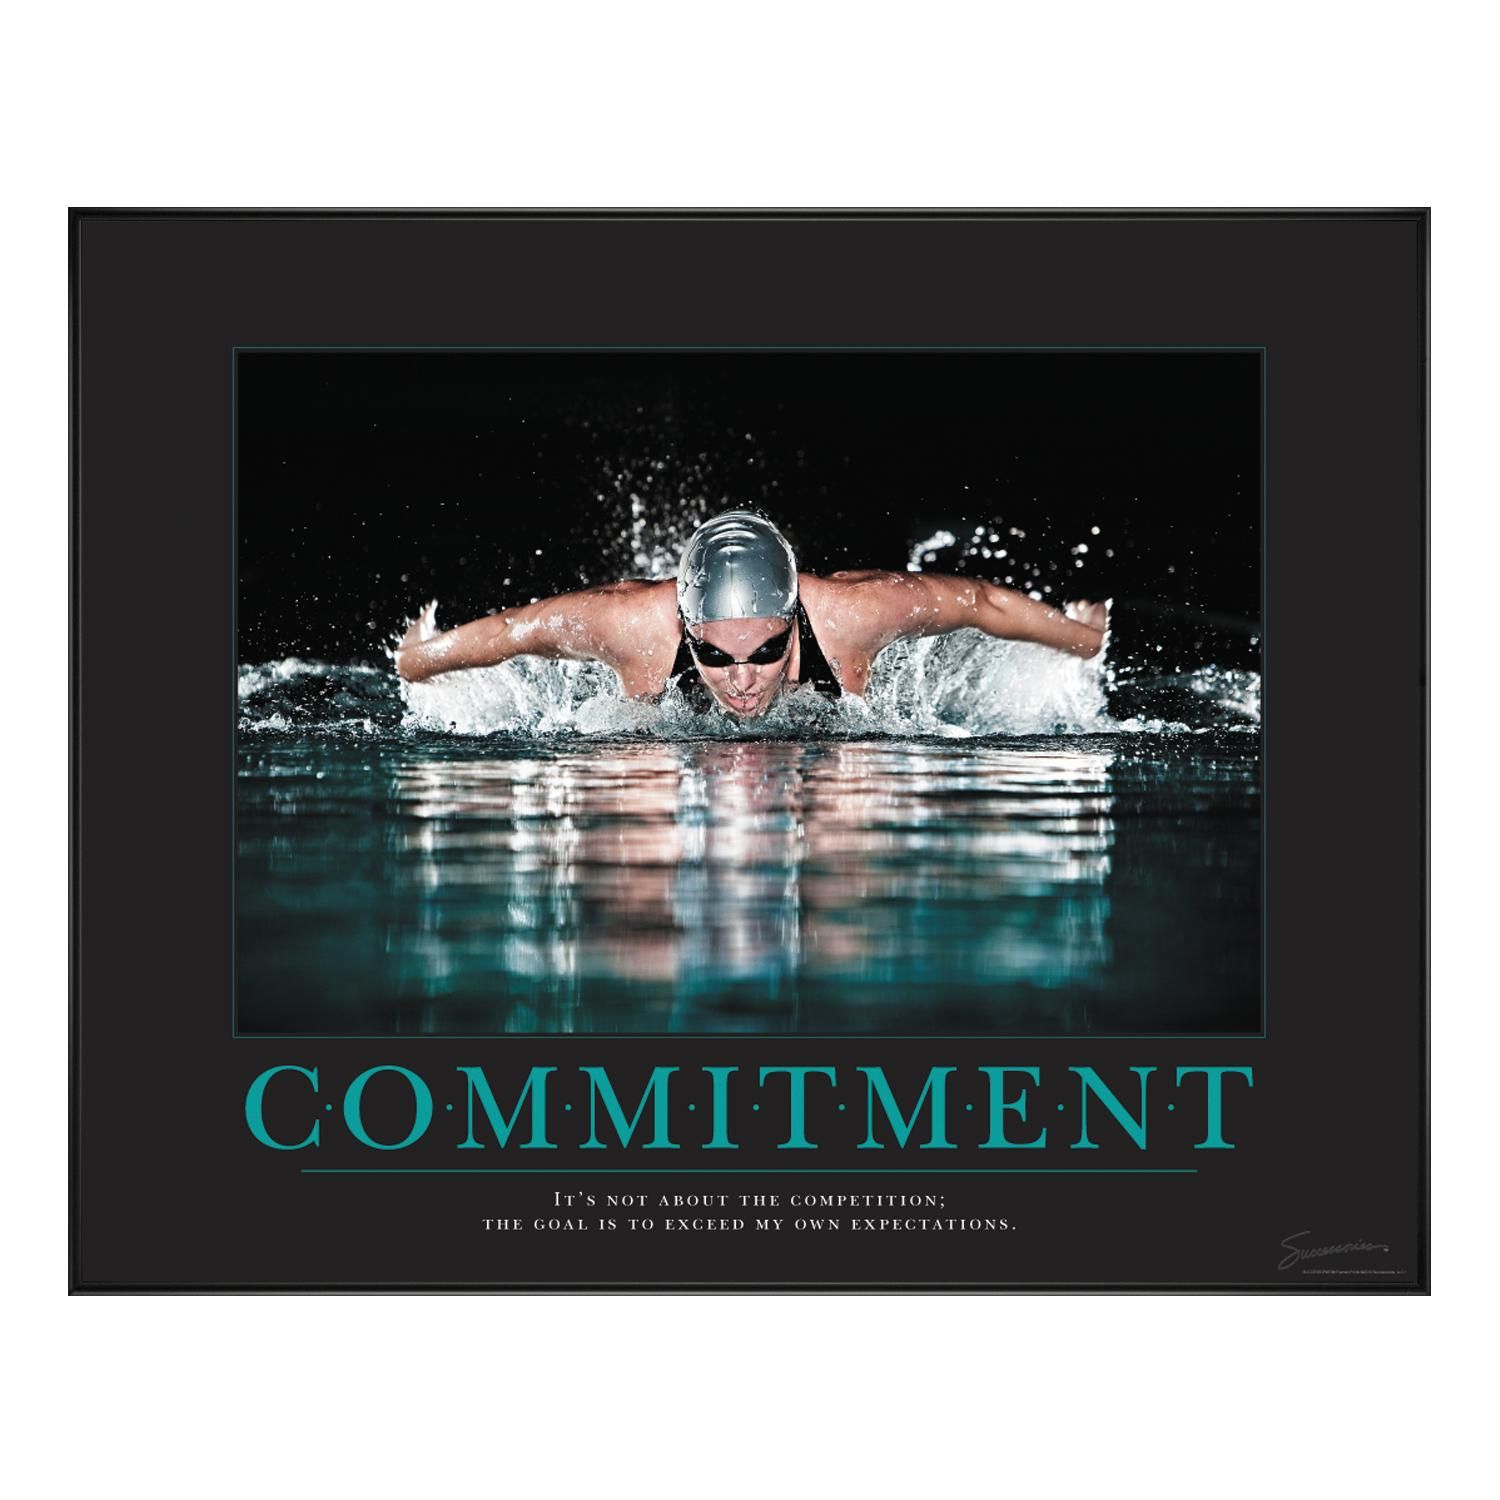 Motivational Quotes For Sports Teams: Swim Team Motivational Quotes. QuotesGram